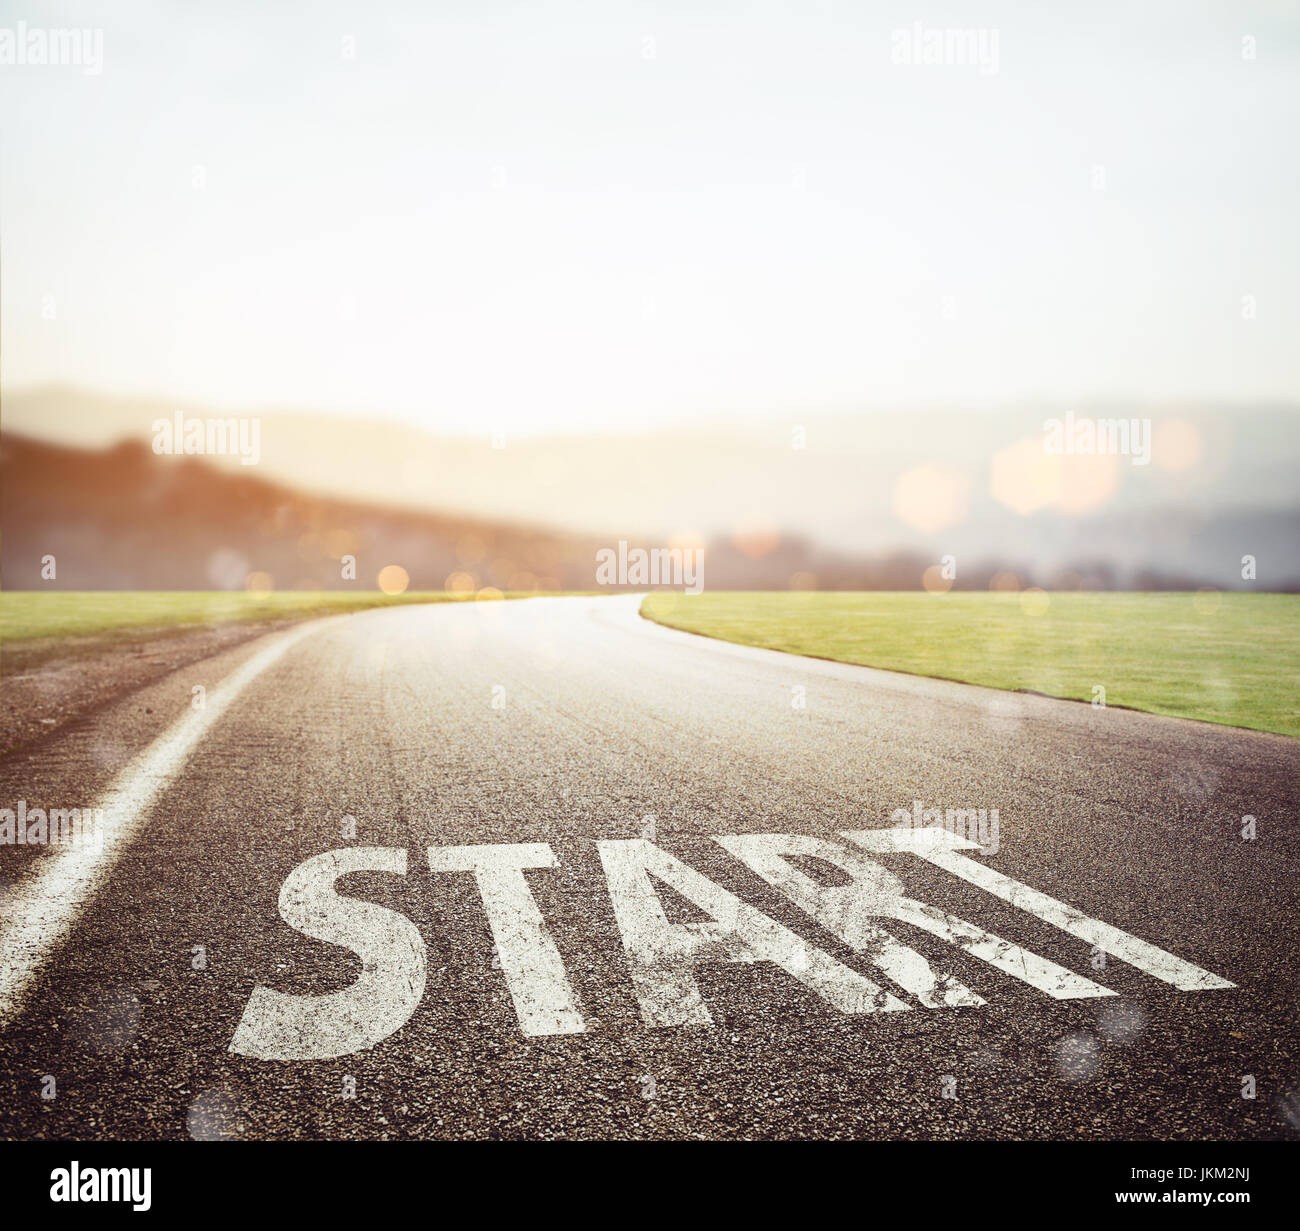 Start written to the ground on a road at sunset - Stock Image